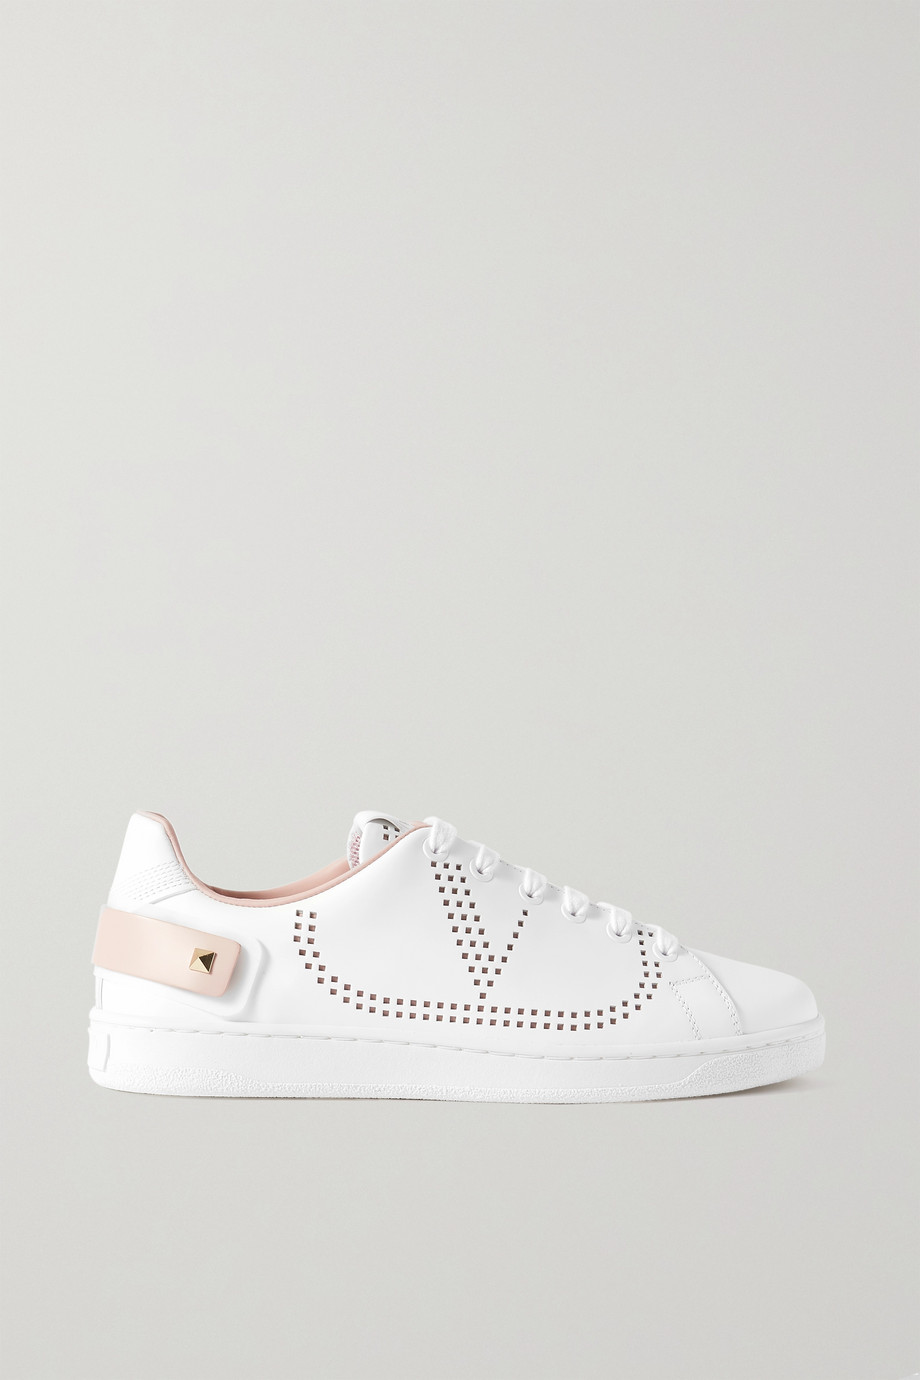 VALENTINO Valentino Garavani Backnet logo-perforated leather sneakers